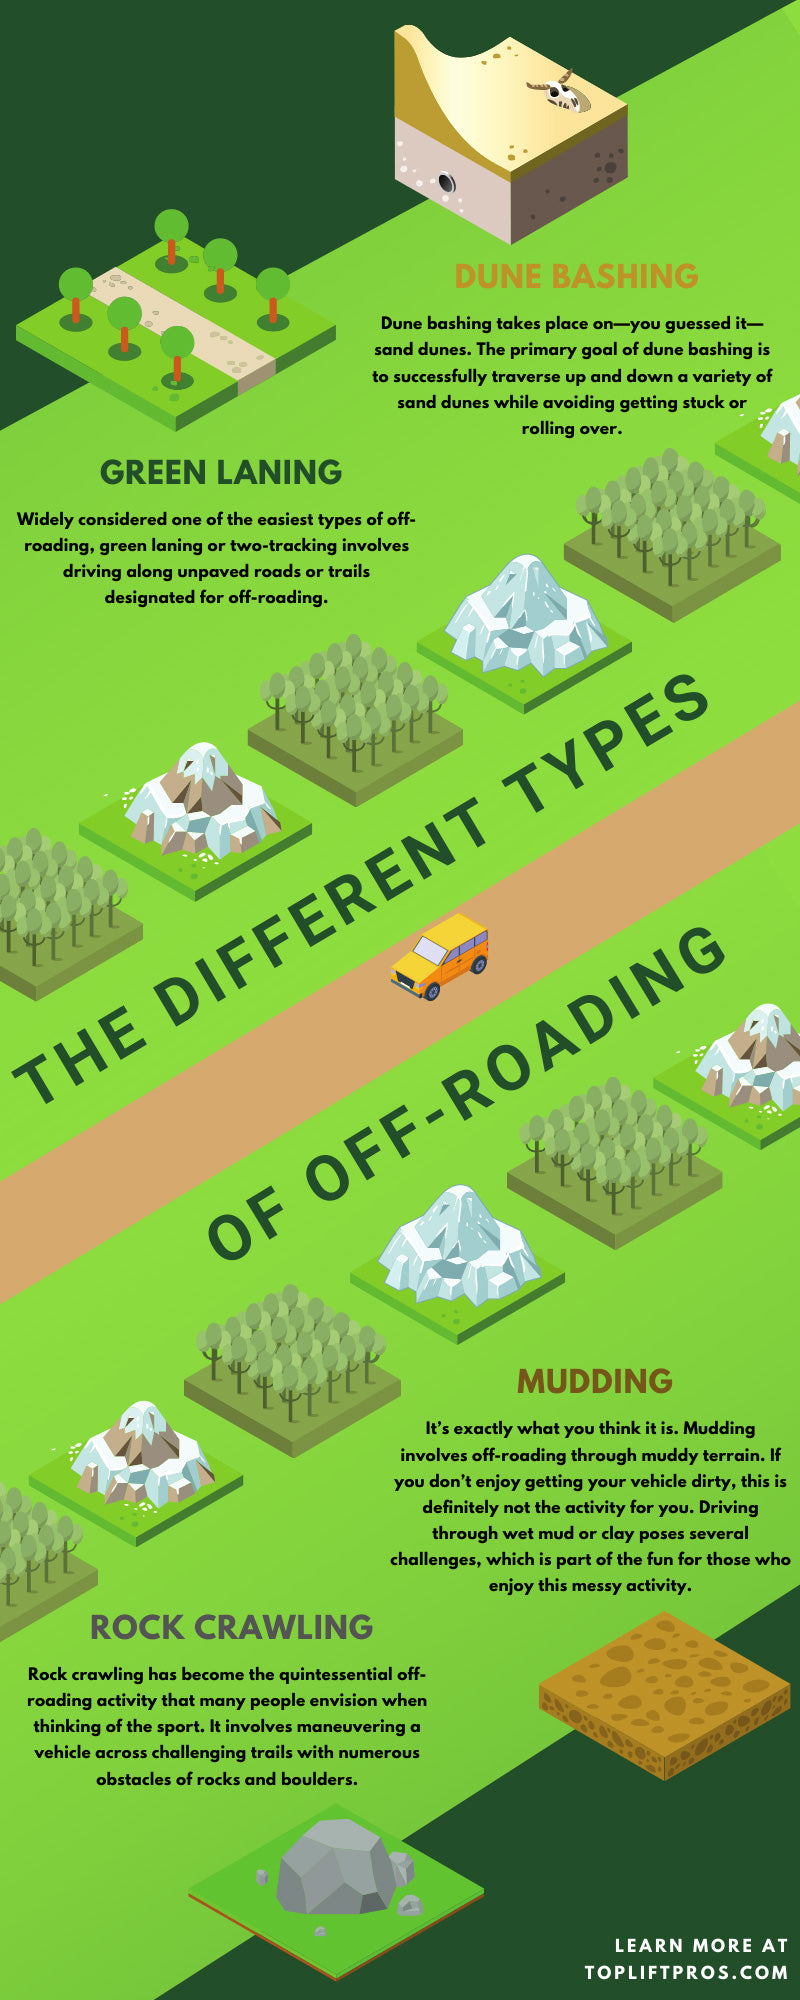 The Different Types of Off-Roading